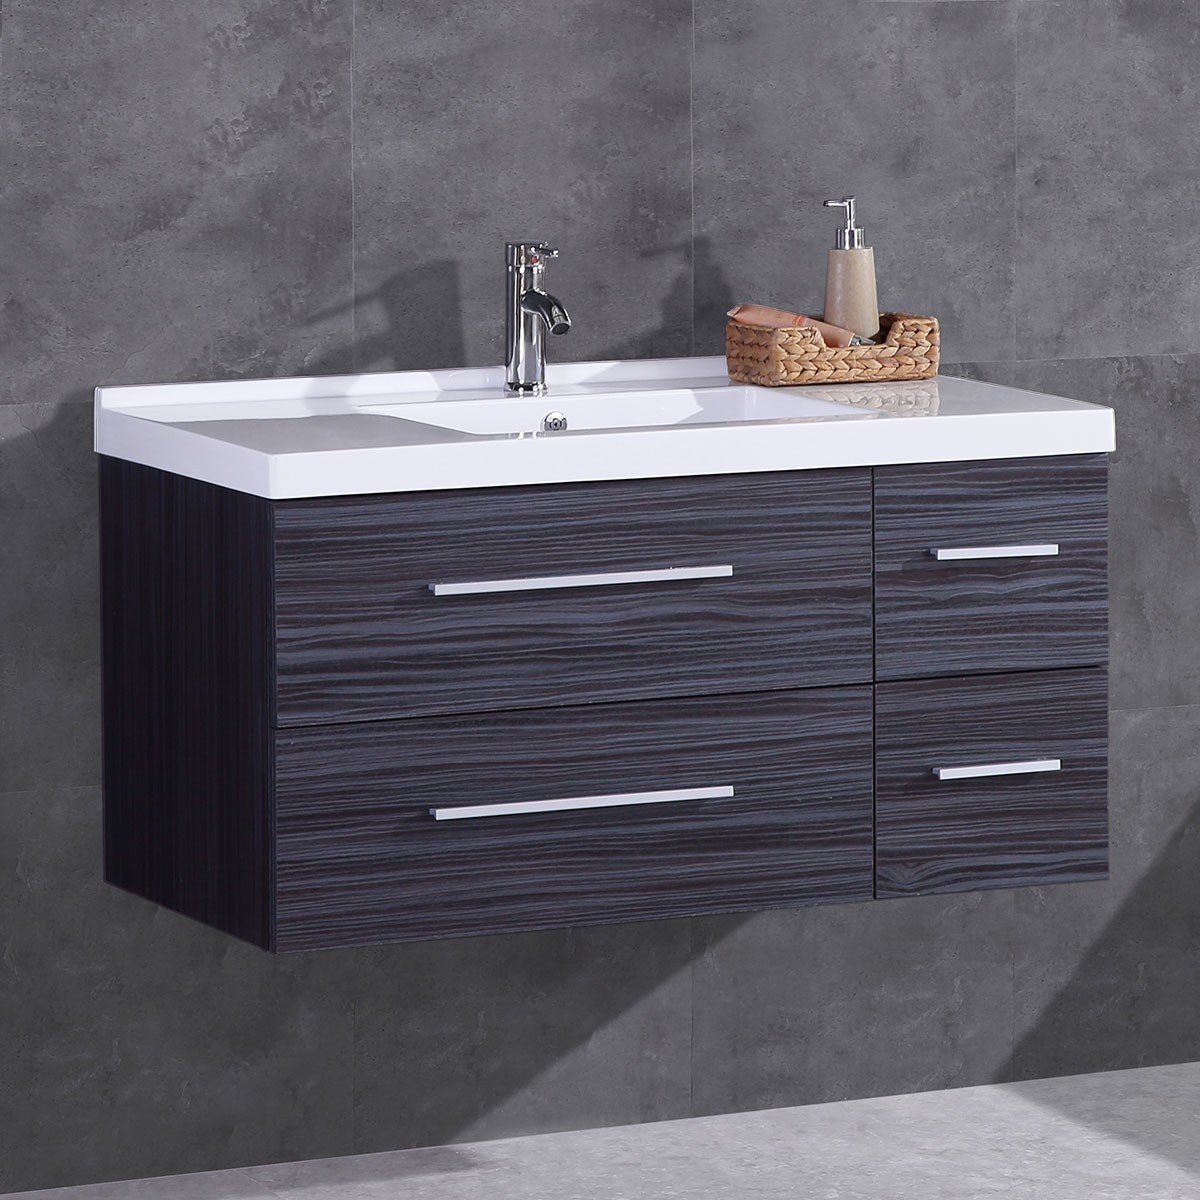 40 In. Plywood Vanity with Basin (DK-T5041-V)